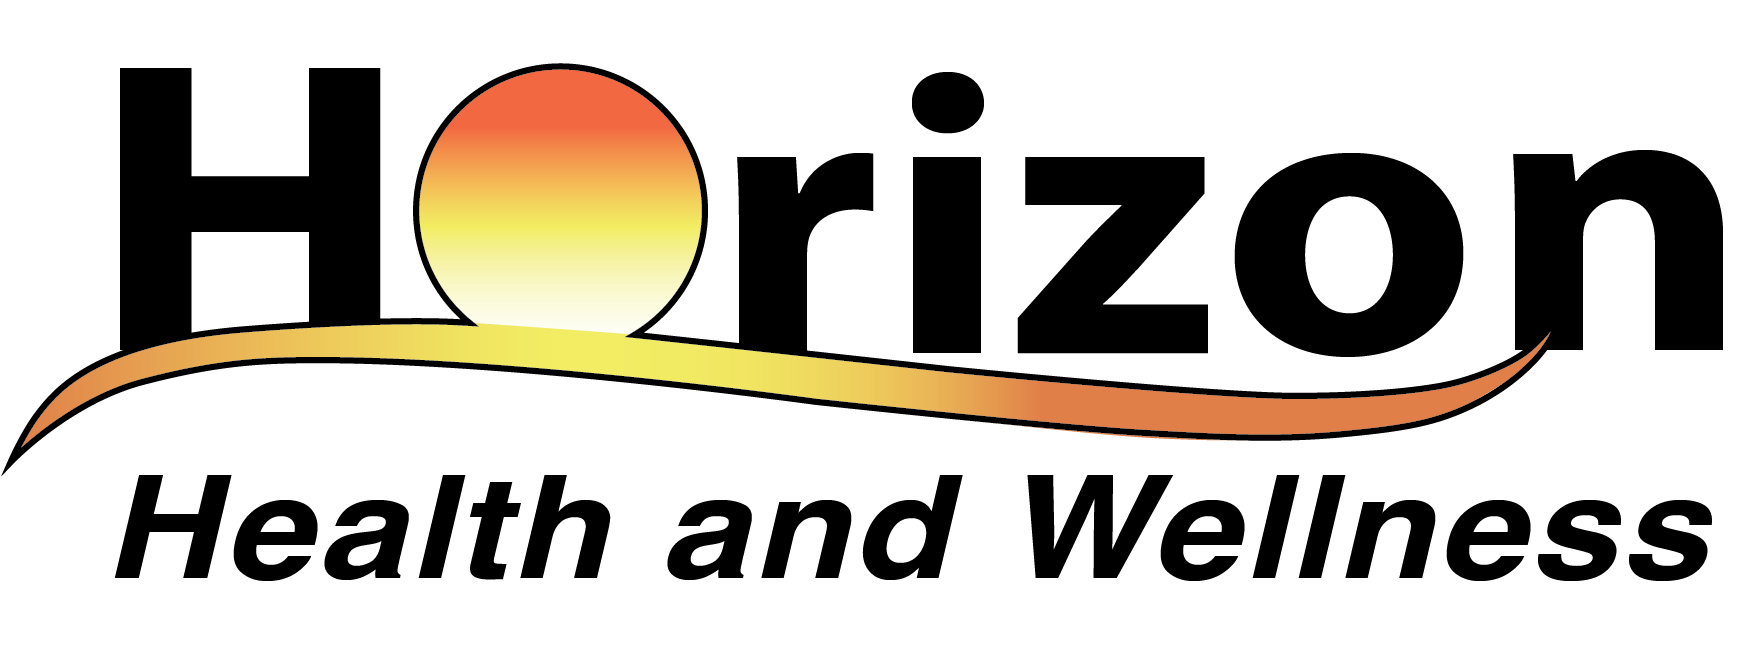 The JPG file of the Horizon Health and Wellness color logo.